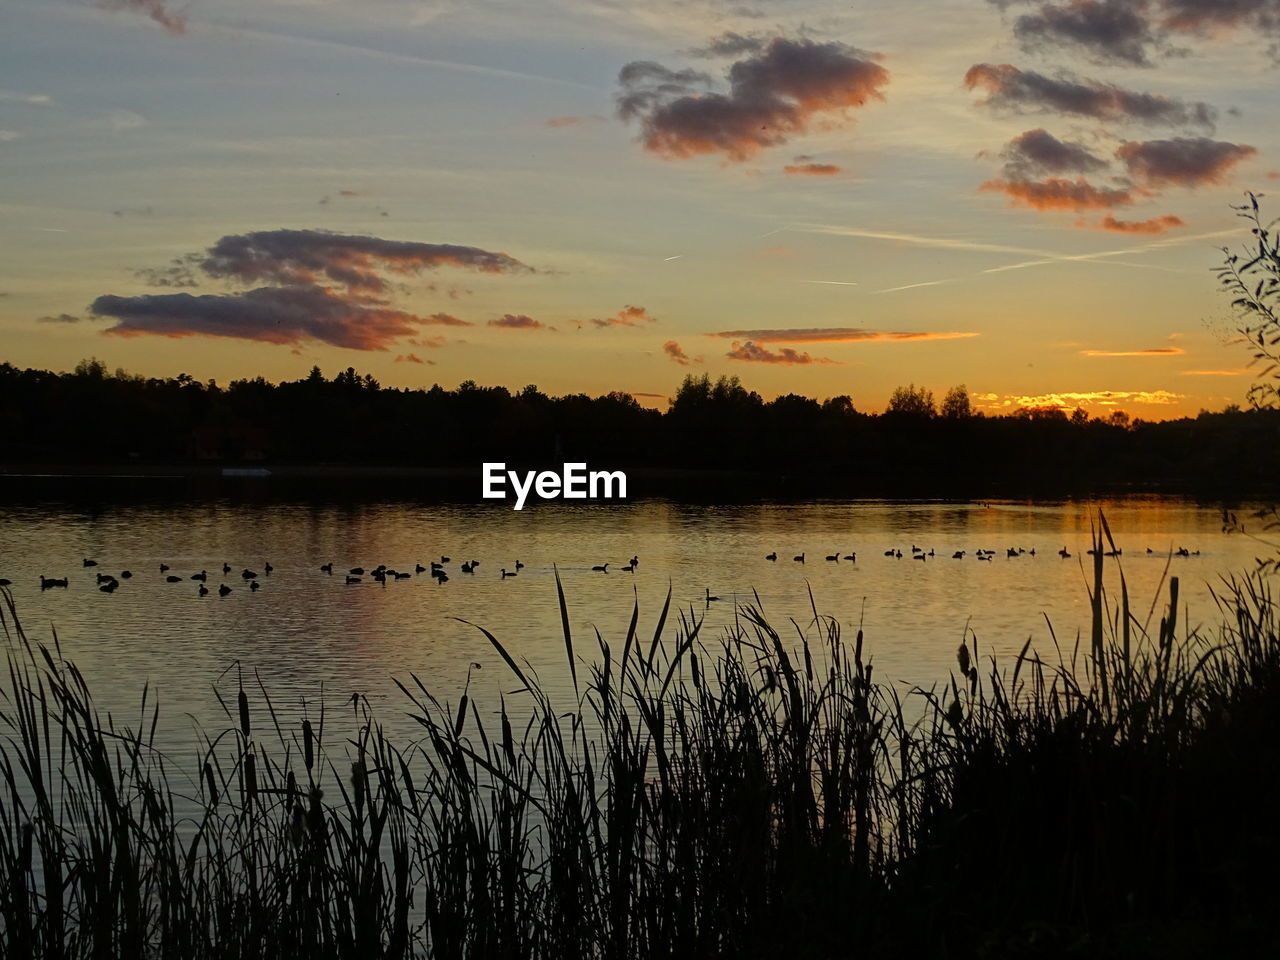 sunset, reflection, lake, water, nature, silhouette, beauty in nature, scenics, tranquil scene, tranquility, sky, no people, outdoors, growth, plant, tree, grass, bird, day